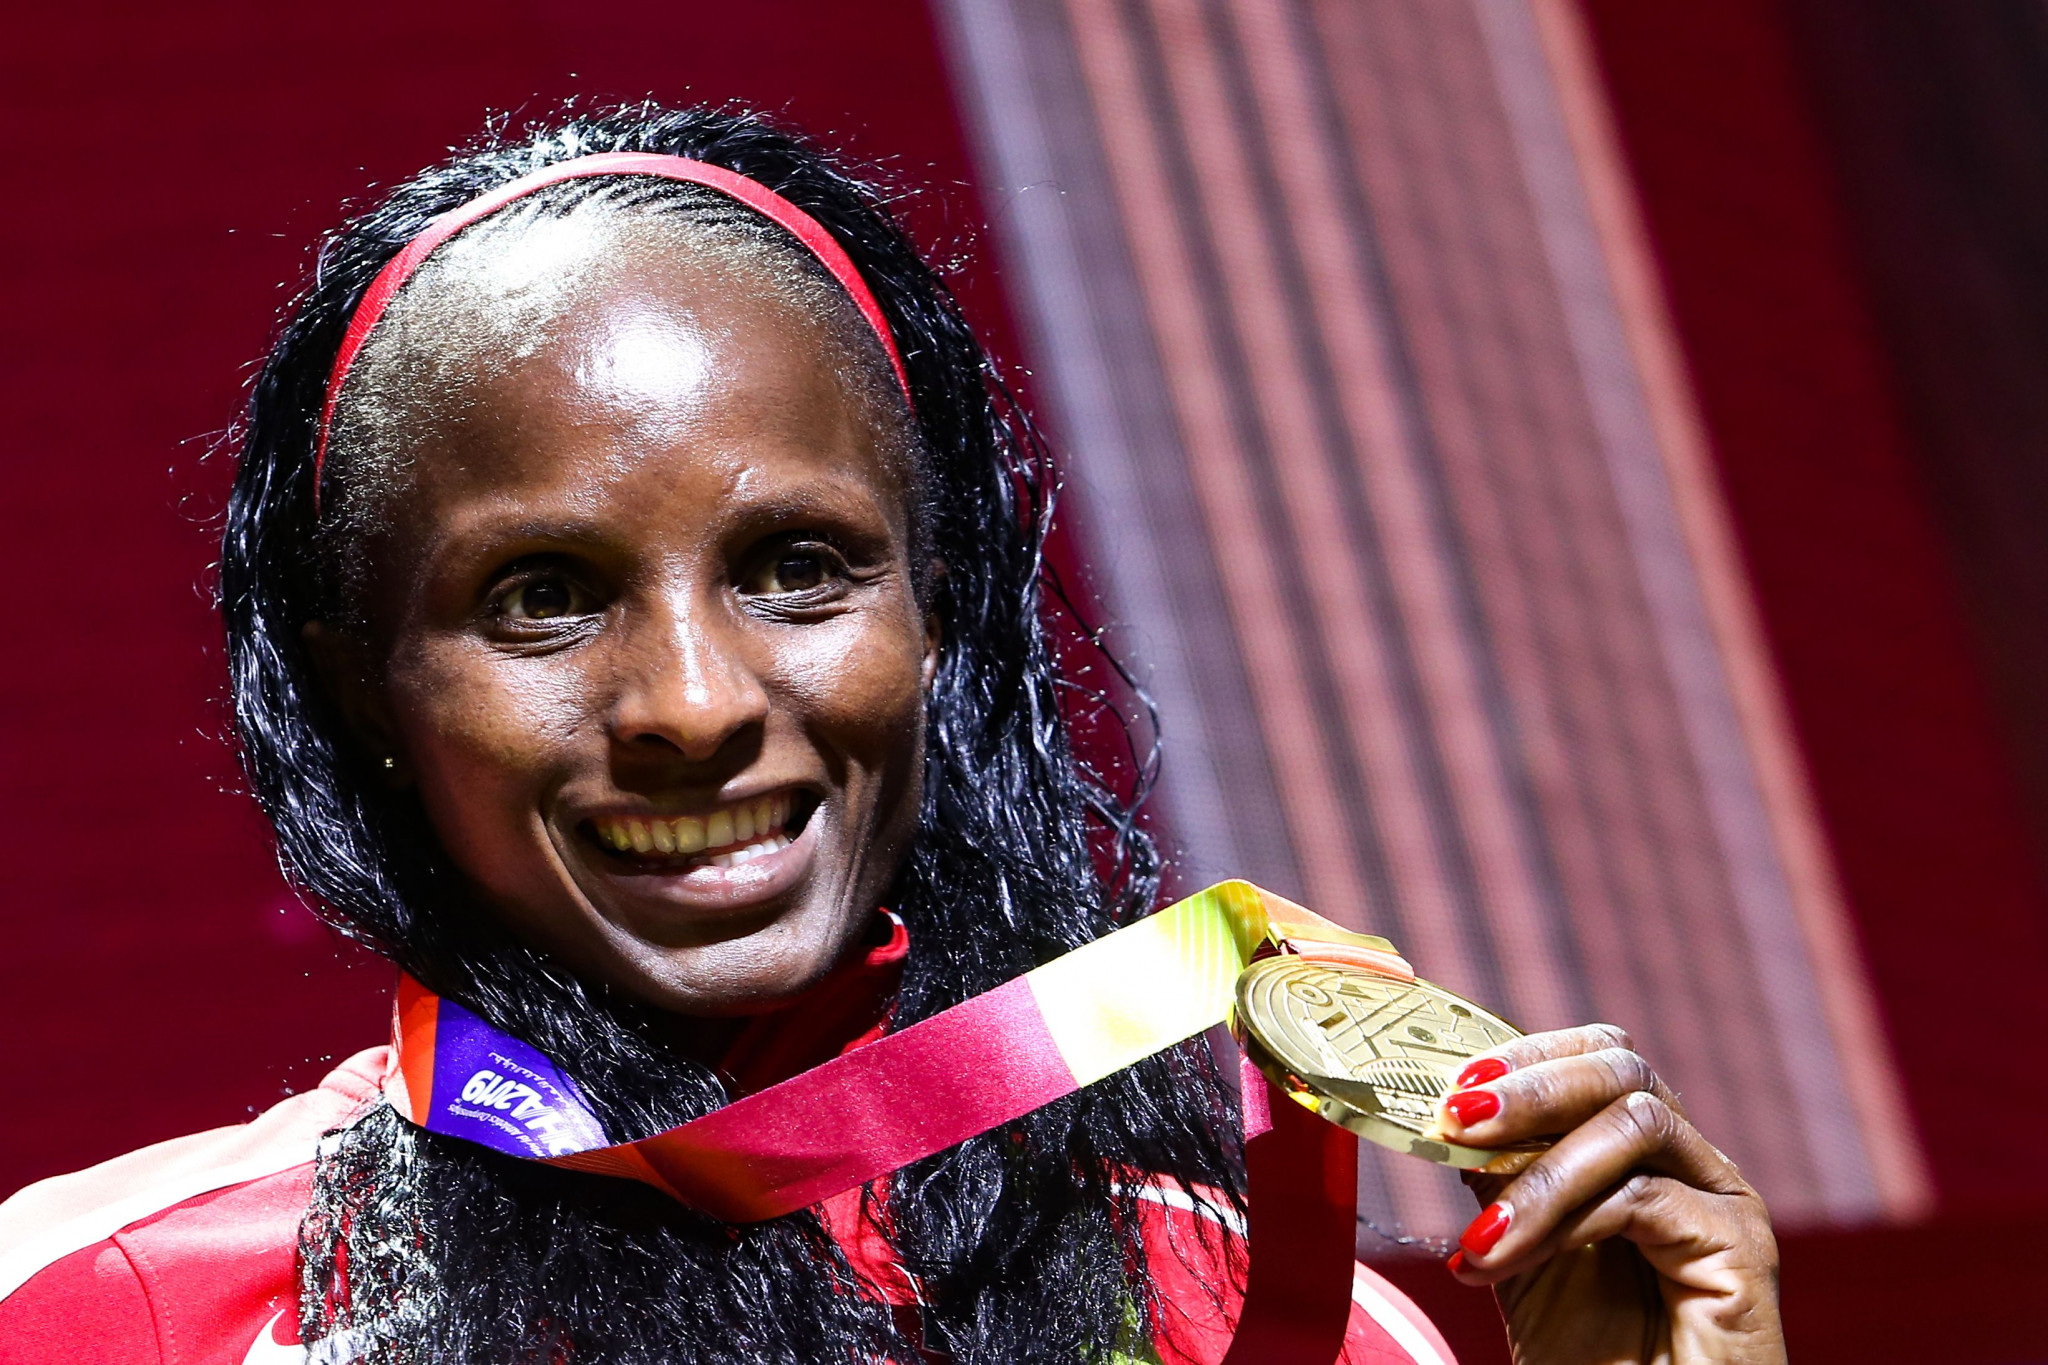 Obiri seeks to build on winning momentum at World Athletics Cross Country Permit race in Spain